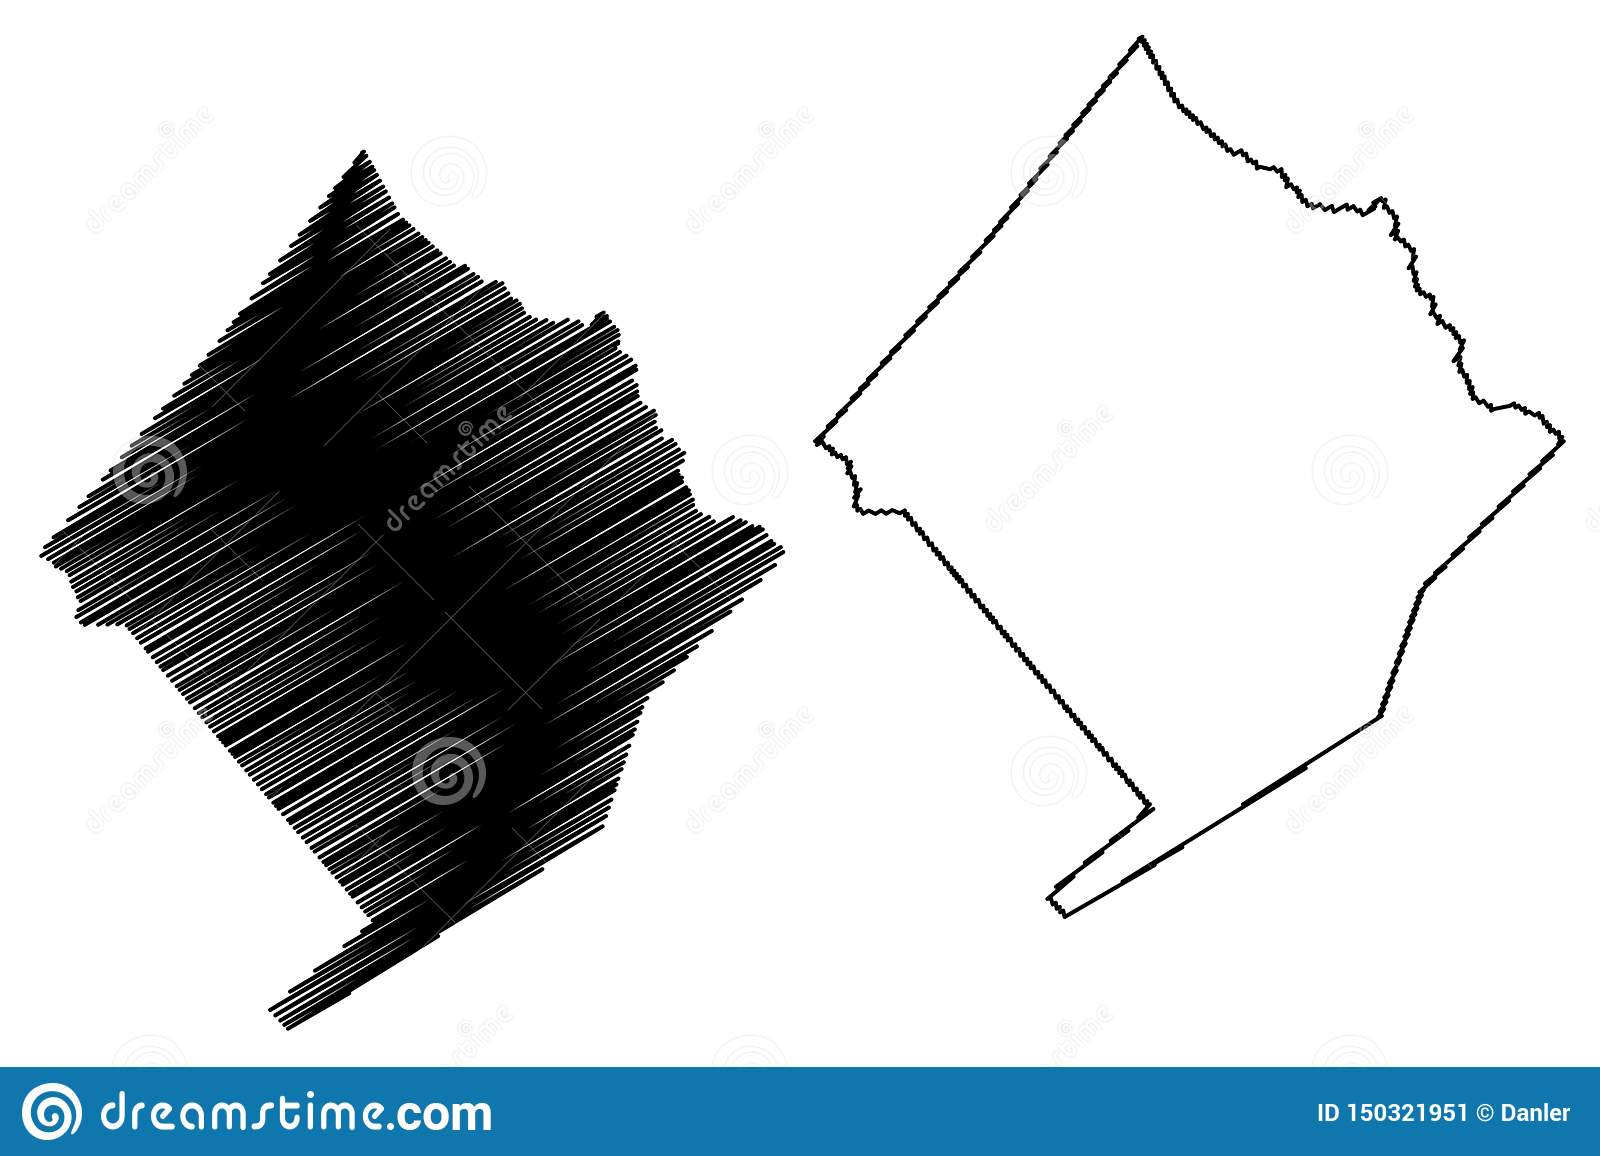 Colorado County, Texas Counties In Texas, United States Of ...